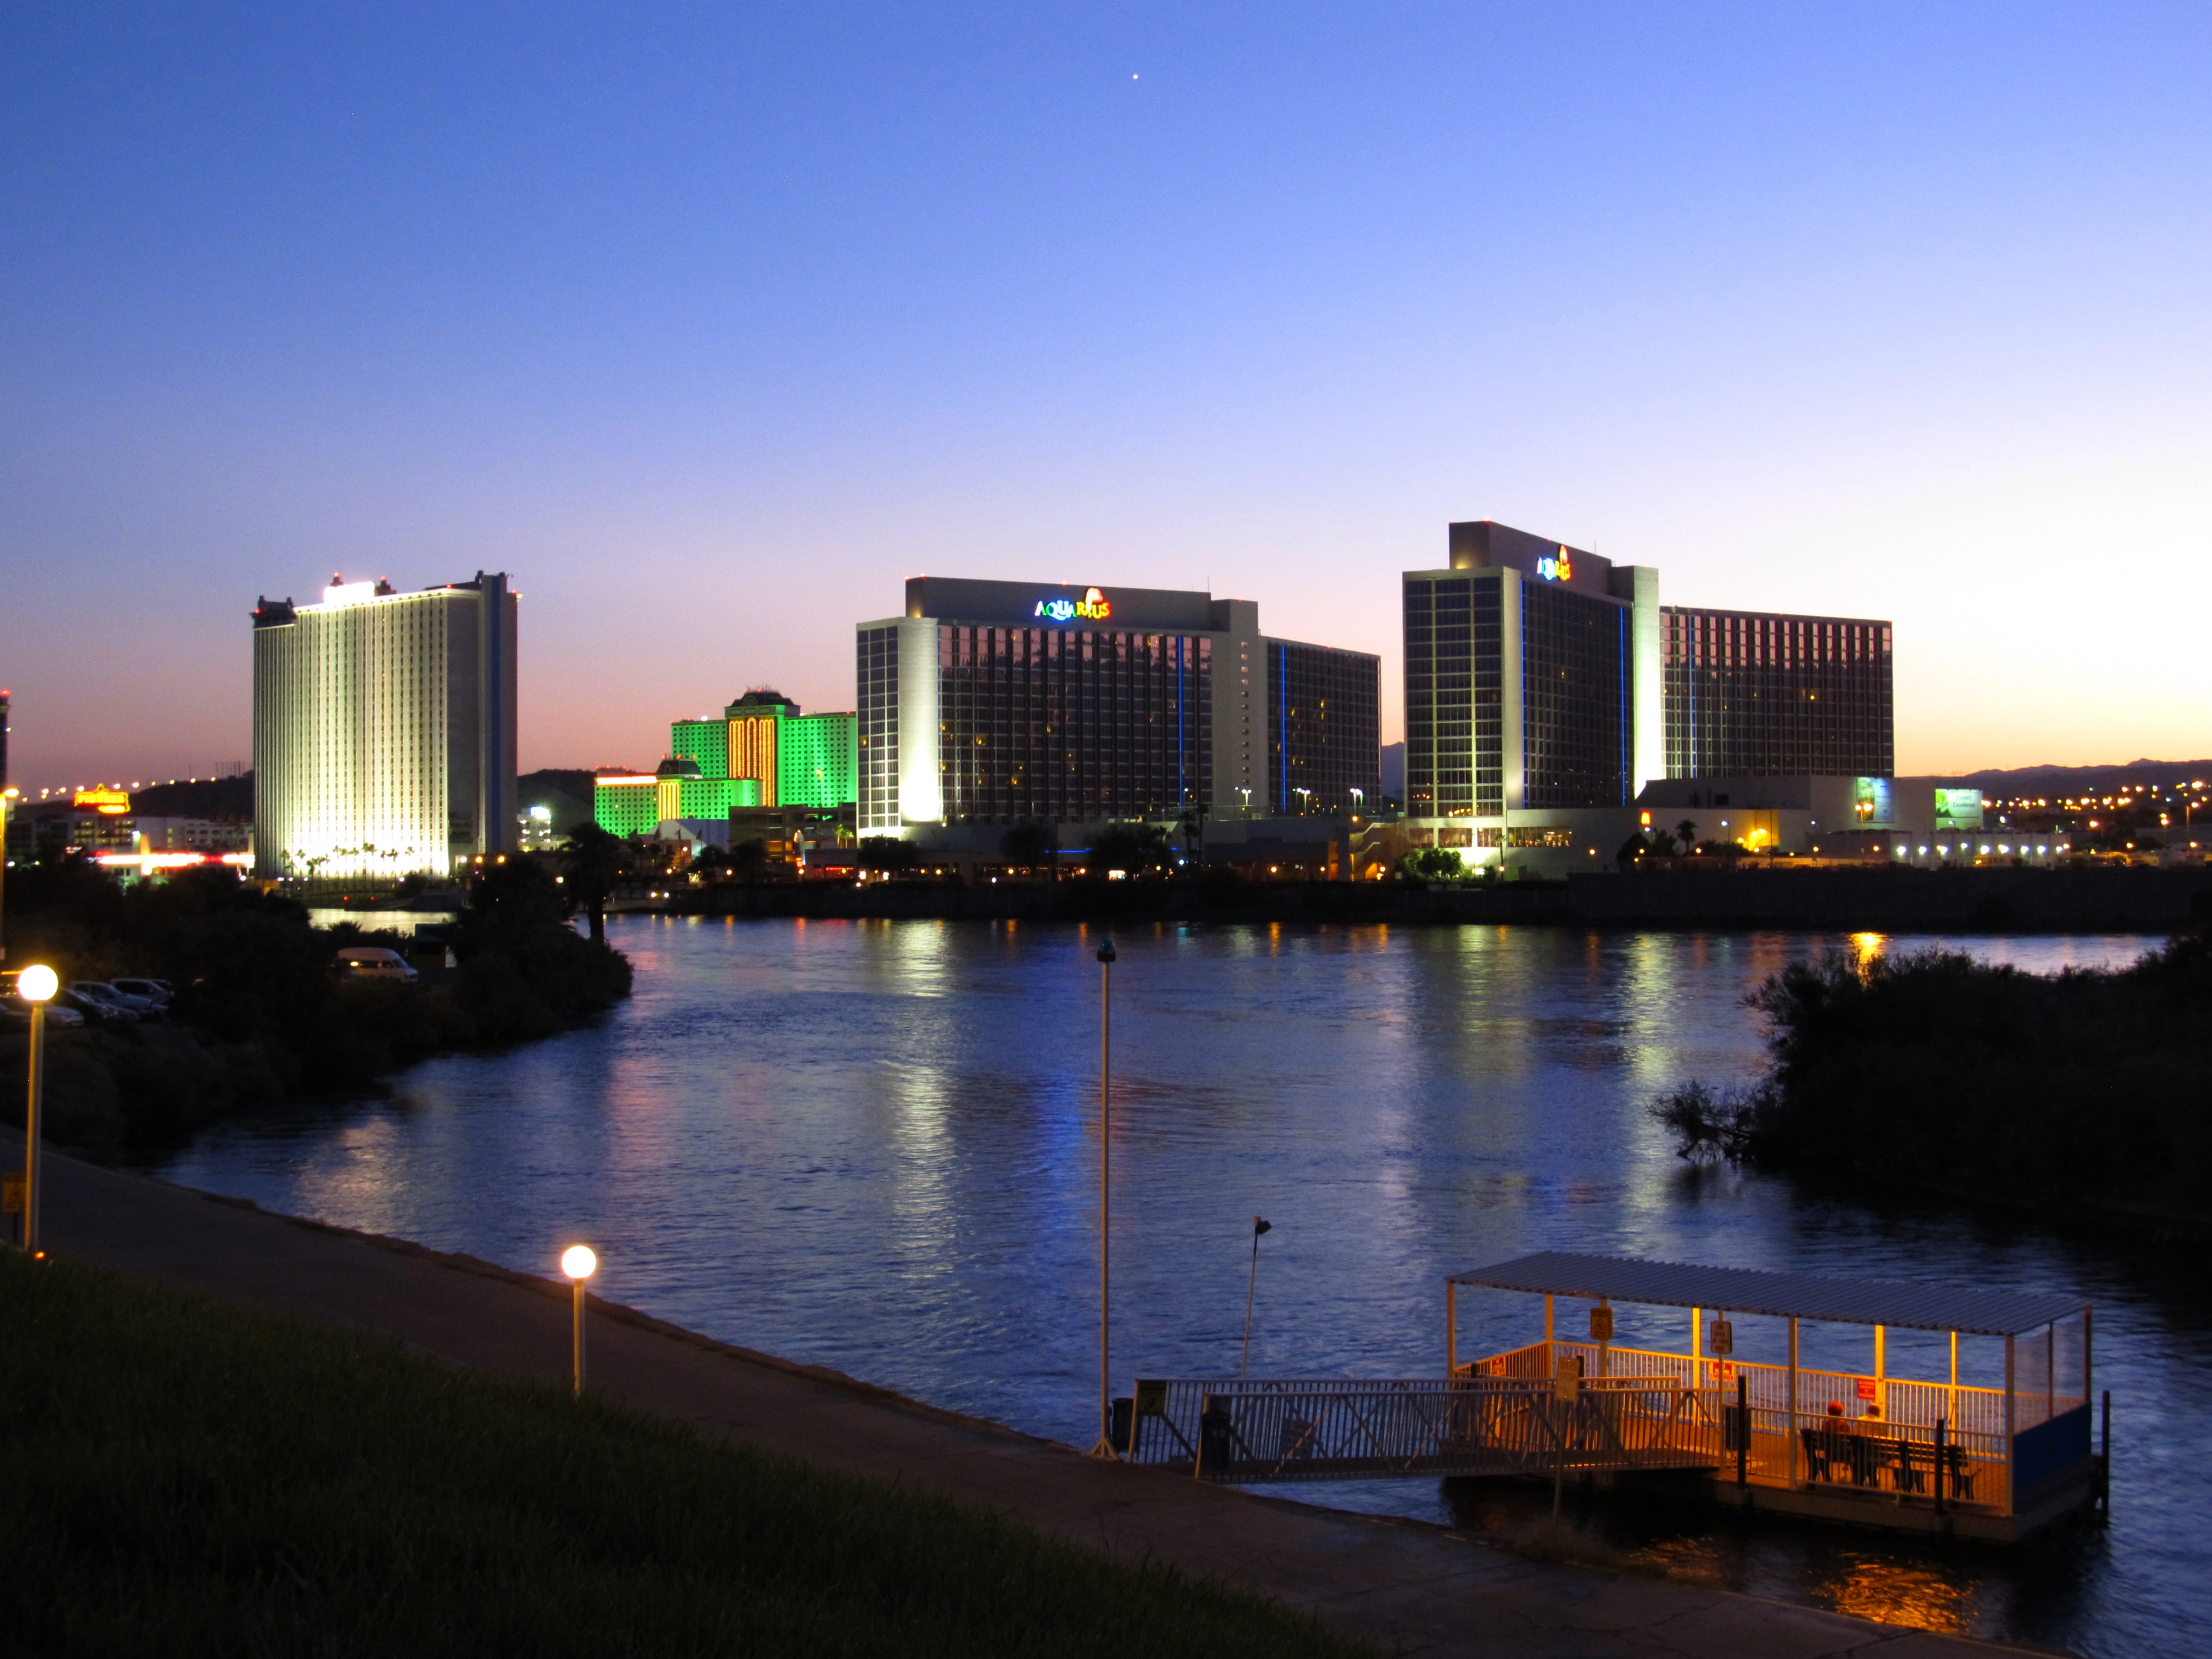 on the river, it emphasizes outdoor and family activities. Many of the casinos that line the Colorado River are linked by an unofficial pedestrian thoroughfare